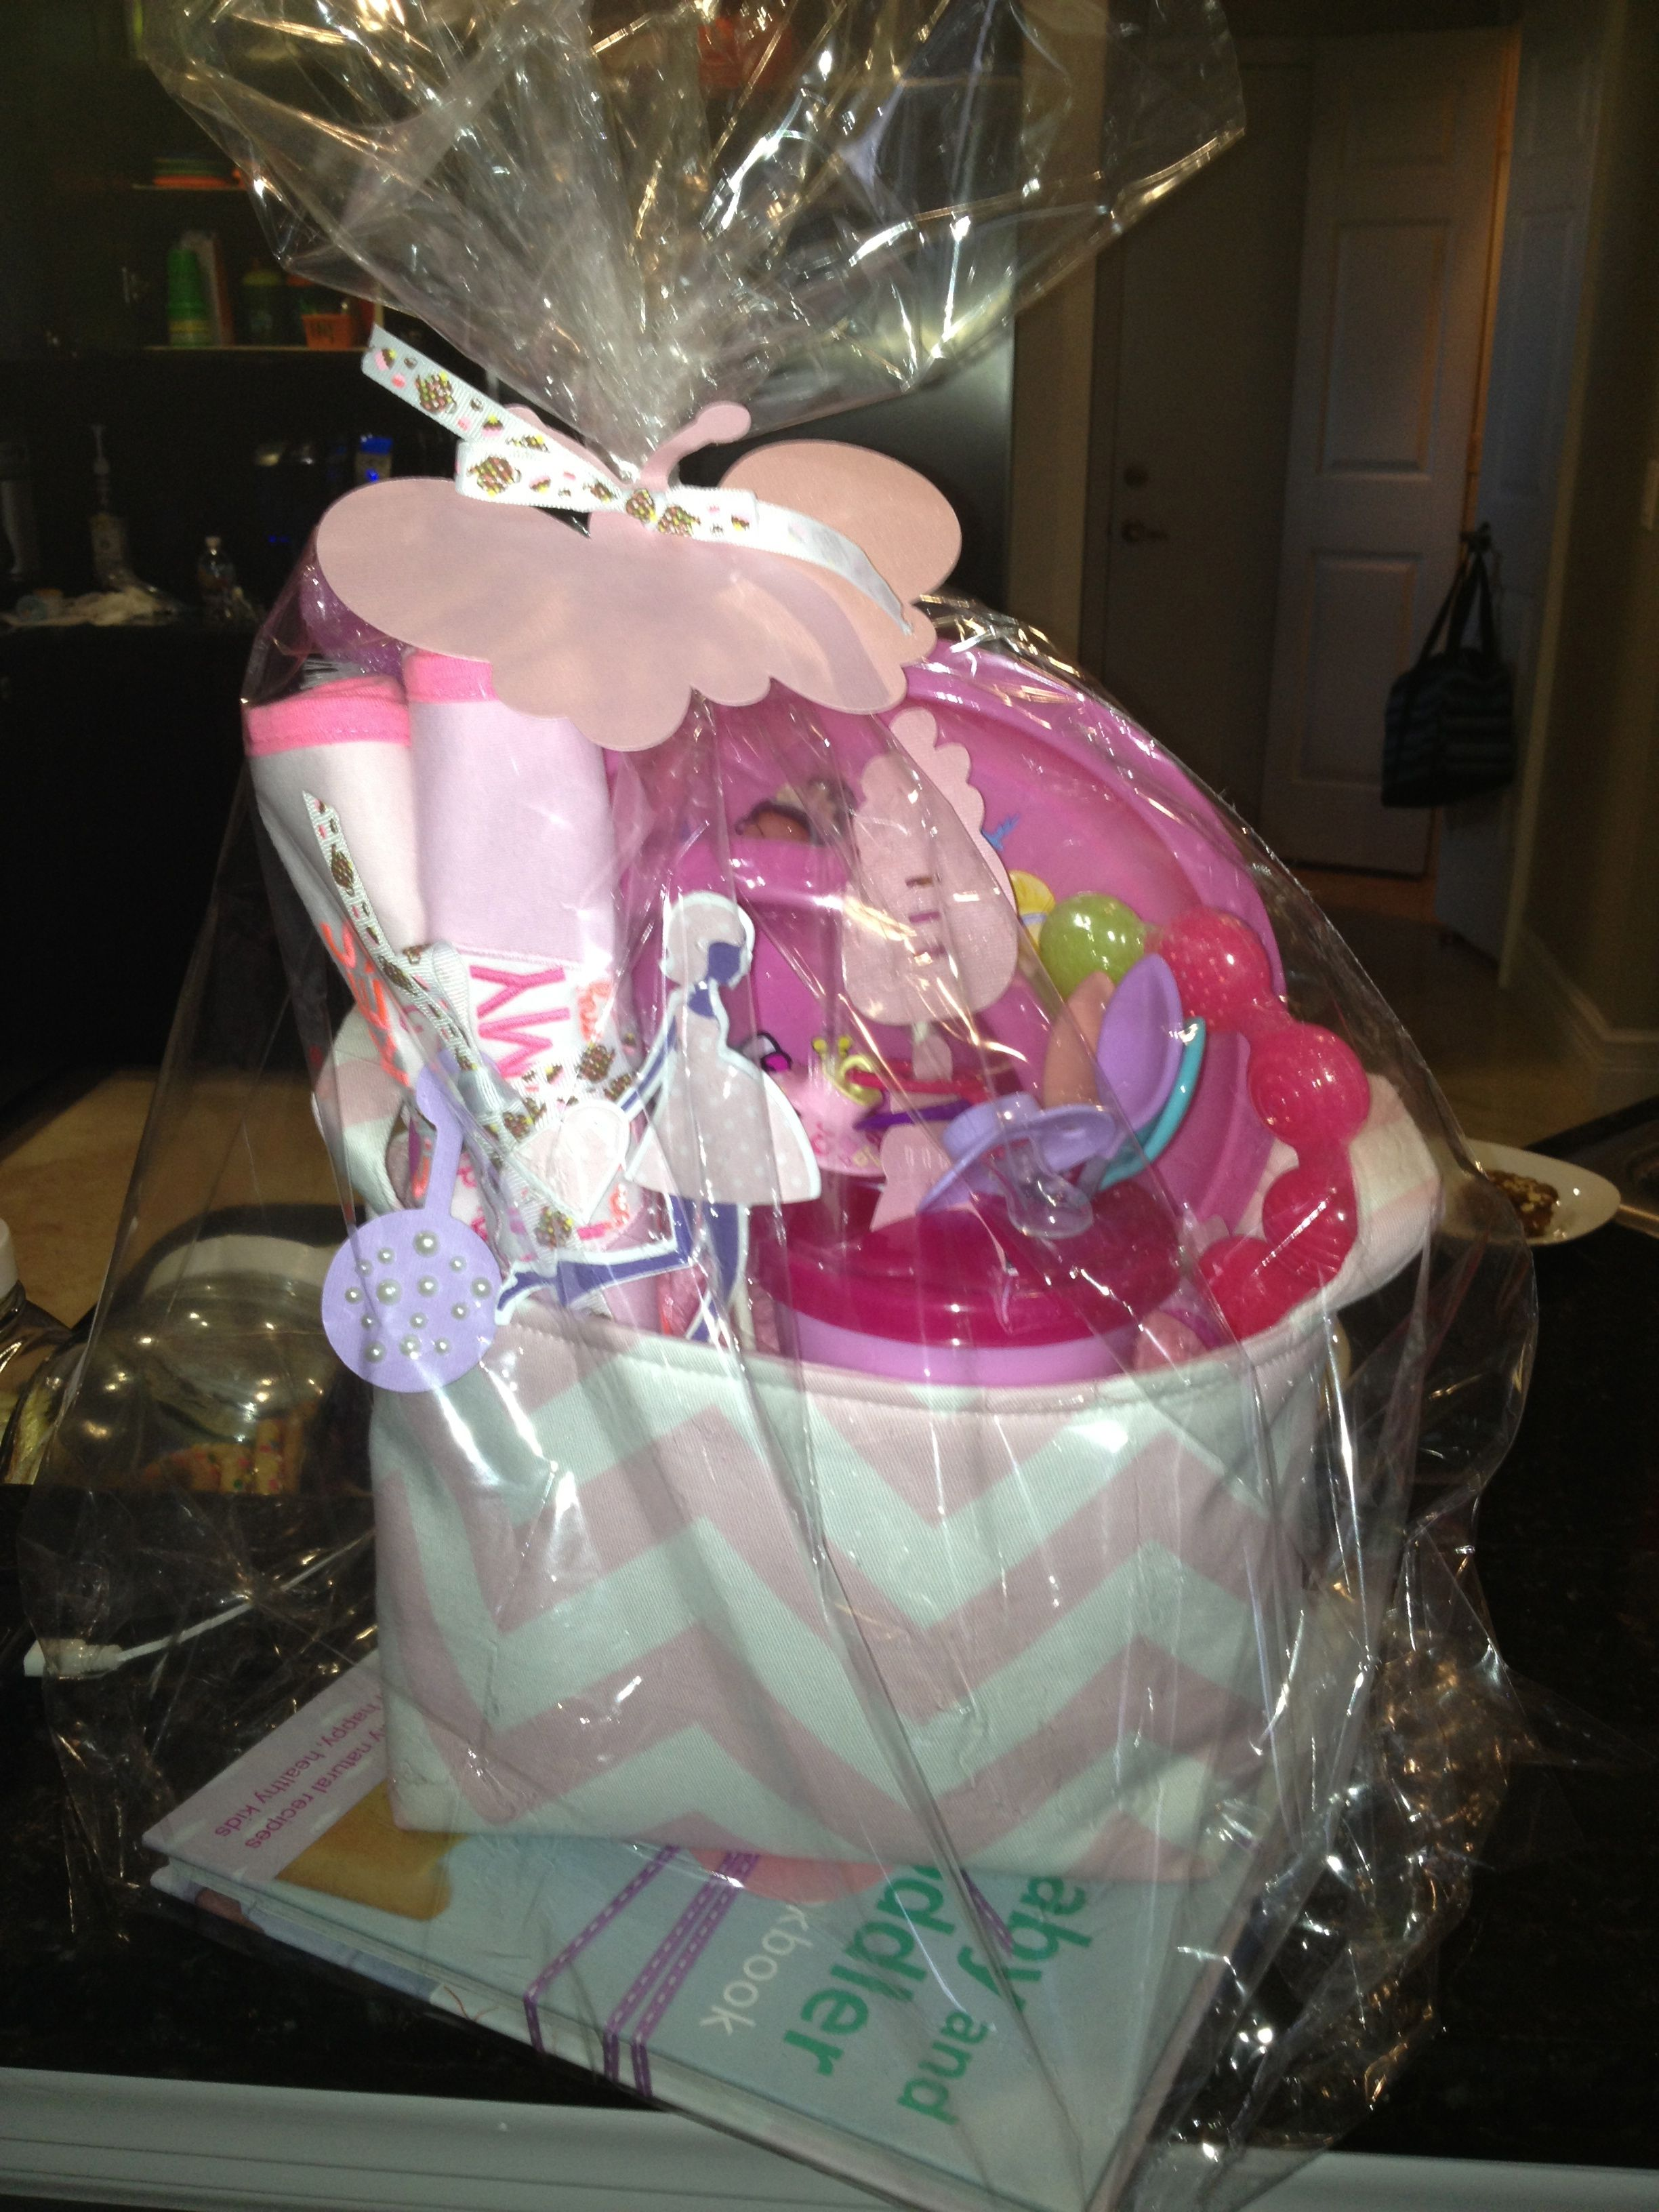 Pin By Amanda Sprague On Kawaii Smitten Kitten Baby Shower Gift Basket Diy Projects Gifts Baby Shower Gifts